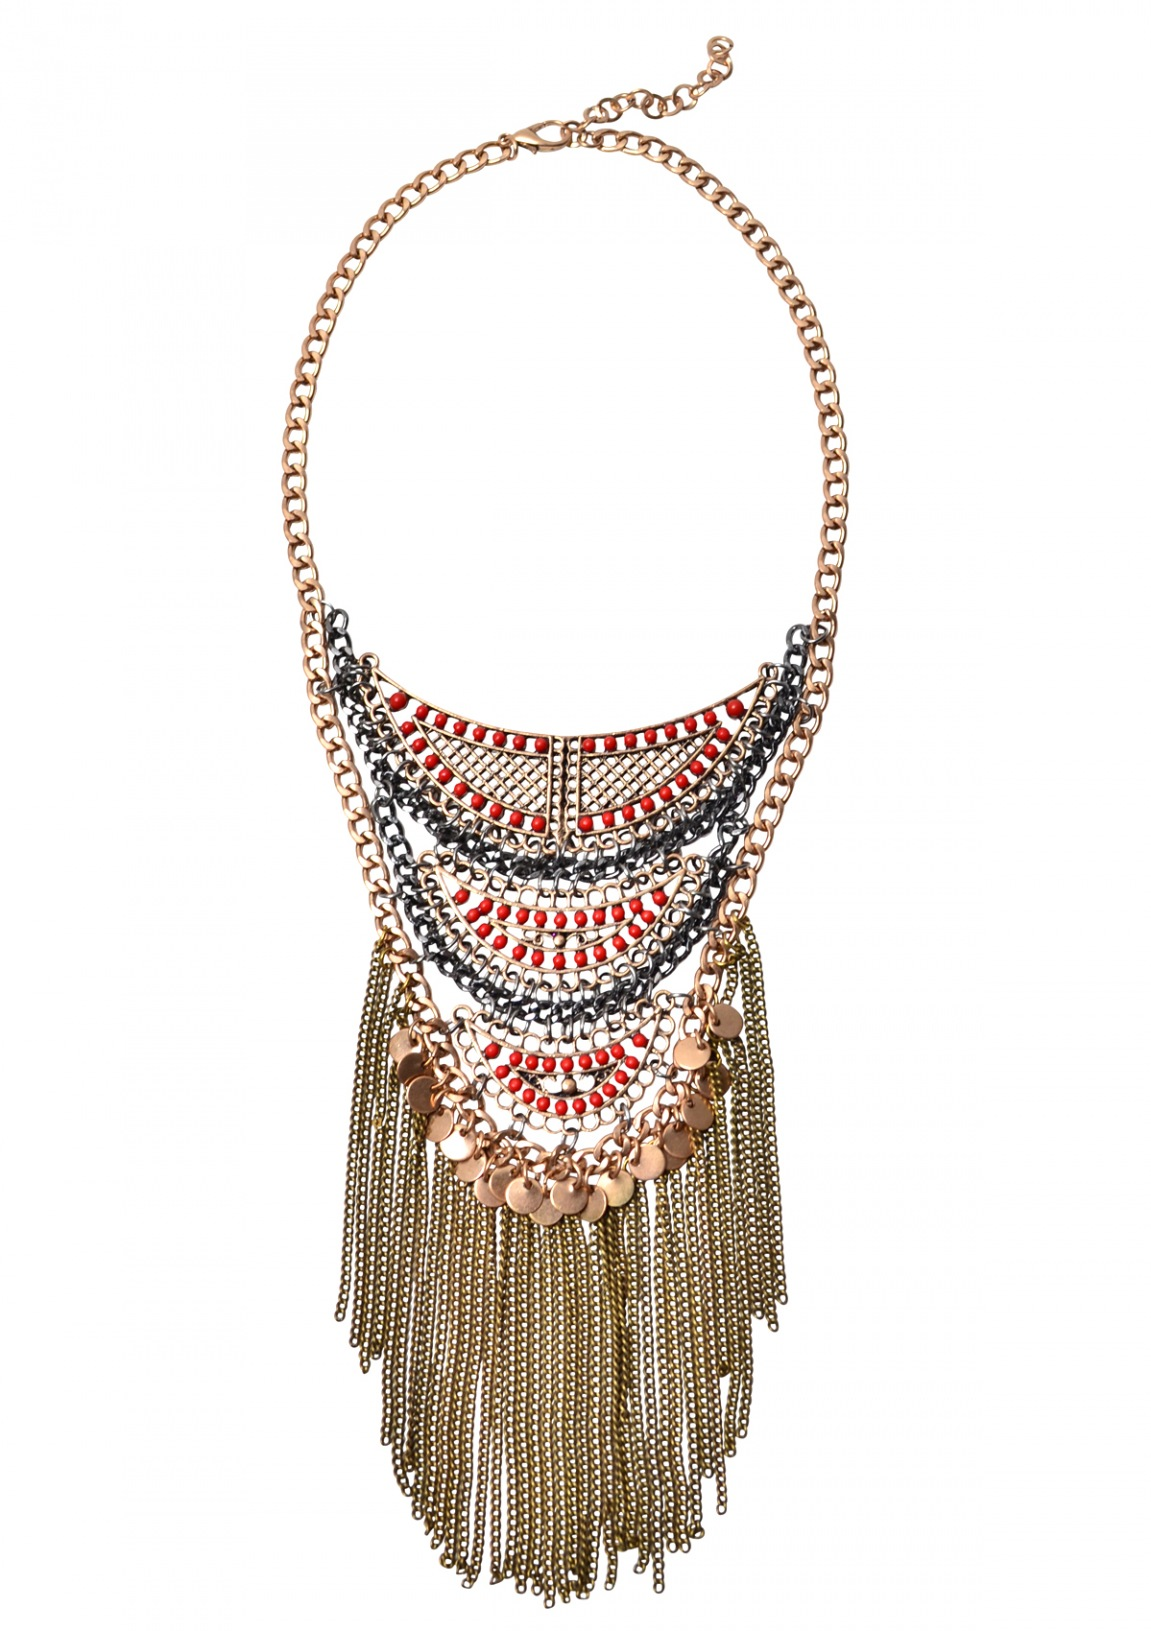 Boho Tribal Statement Necklace Happiness Boutique